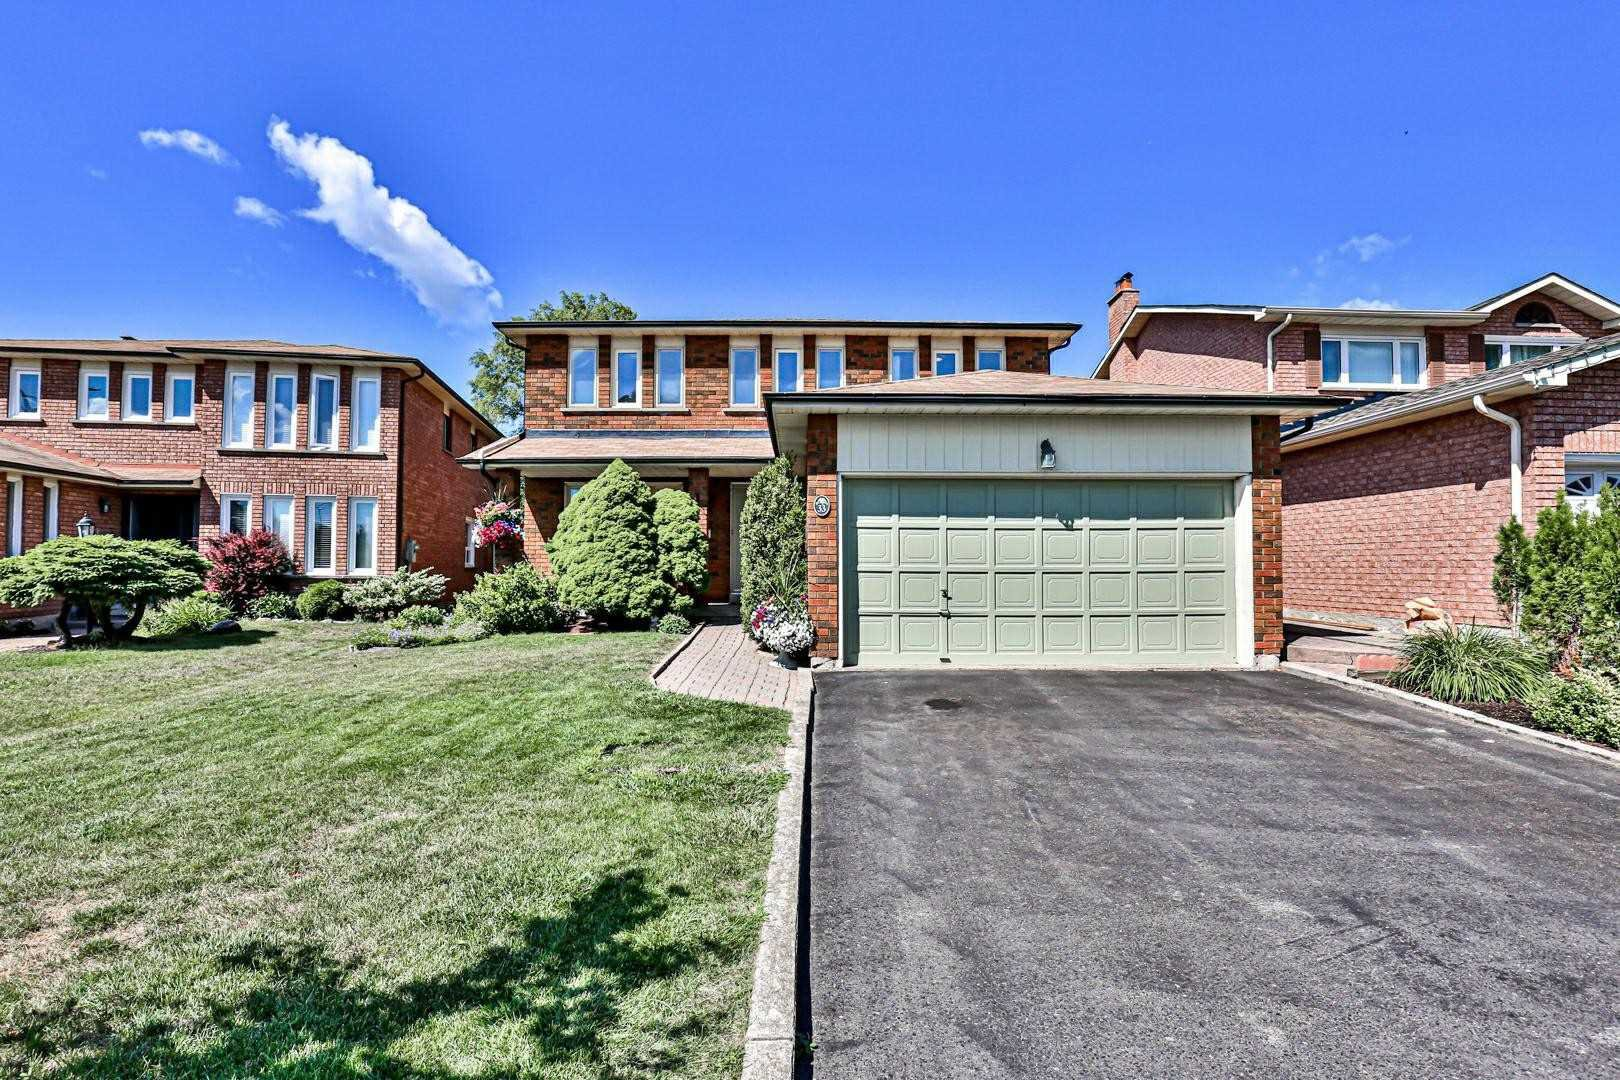 Main Photo: 33 Cobbler Crescent in Markham: Raymerville House (2-Storey) for sale : MLS®# N4840822